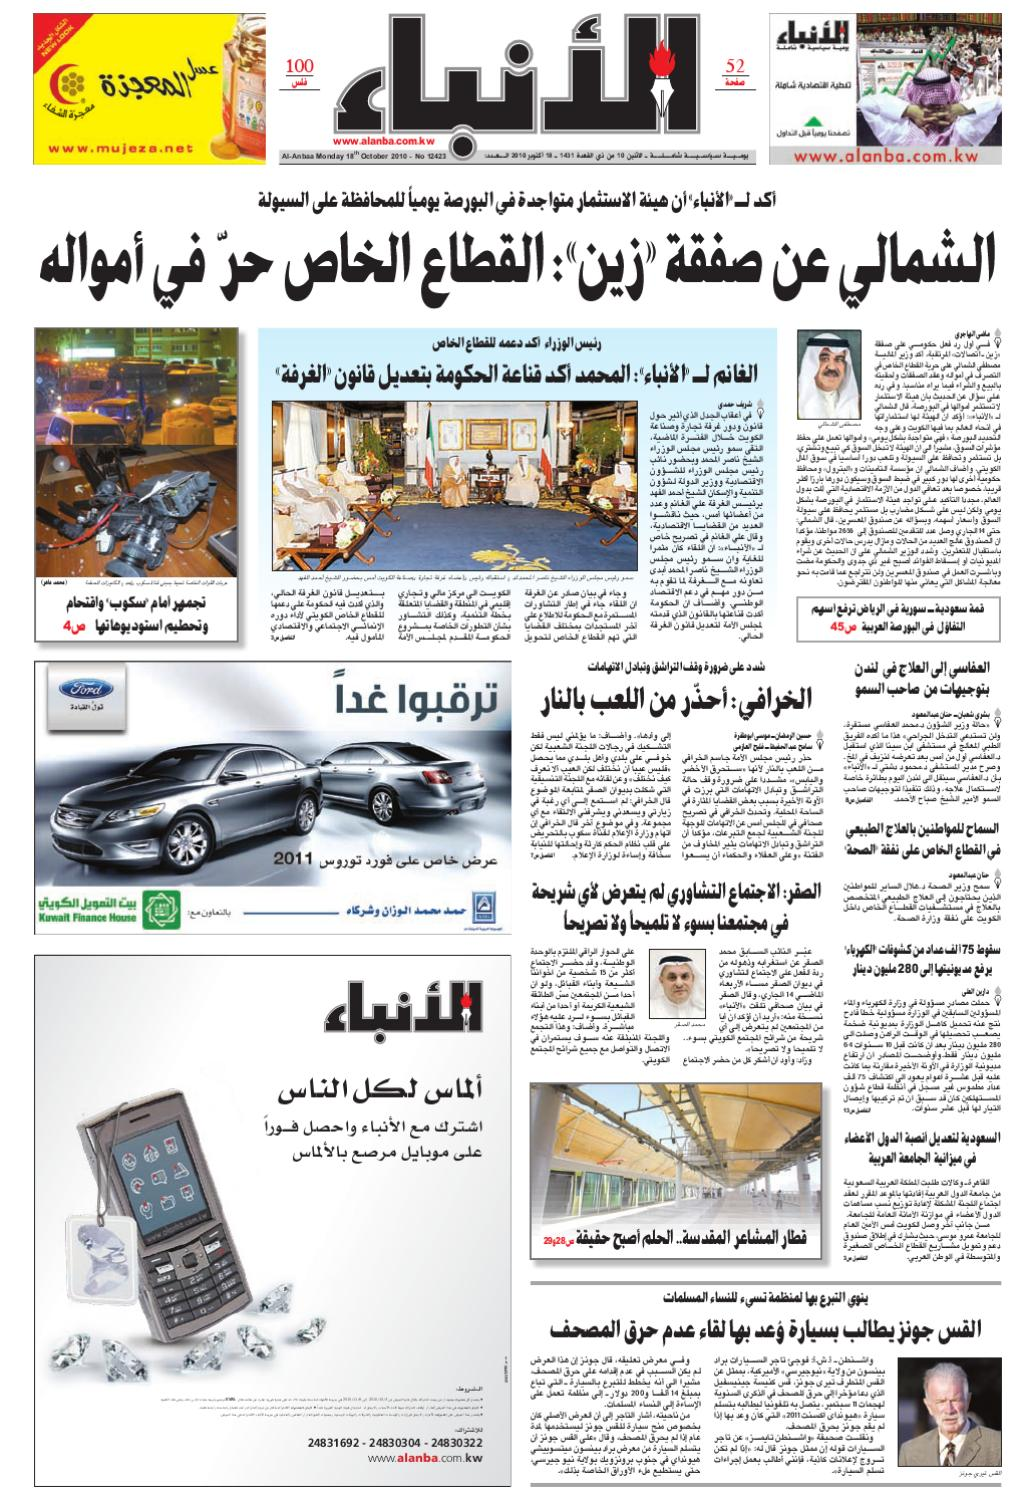 324f867f5 Al-Anba 18-10-2010 by Al-Anba Newspaper - issuu